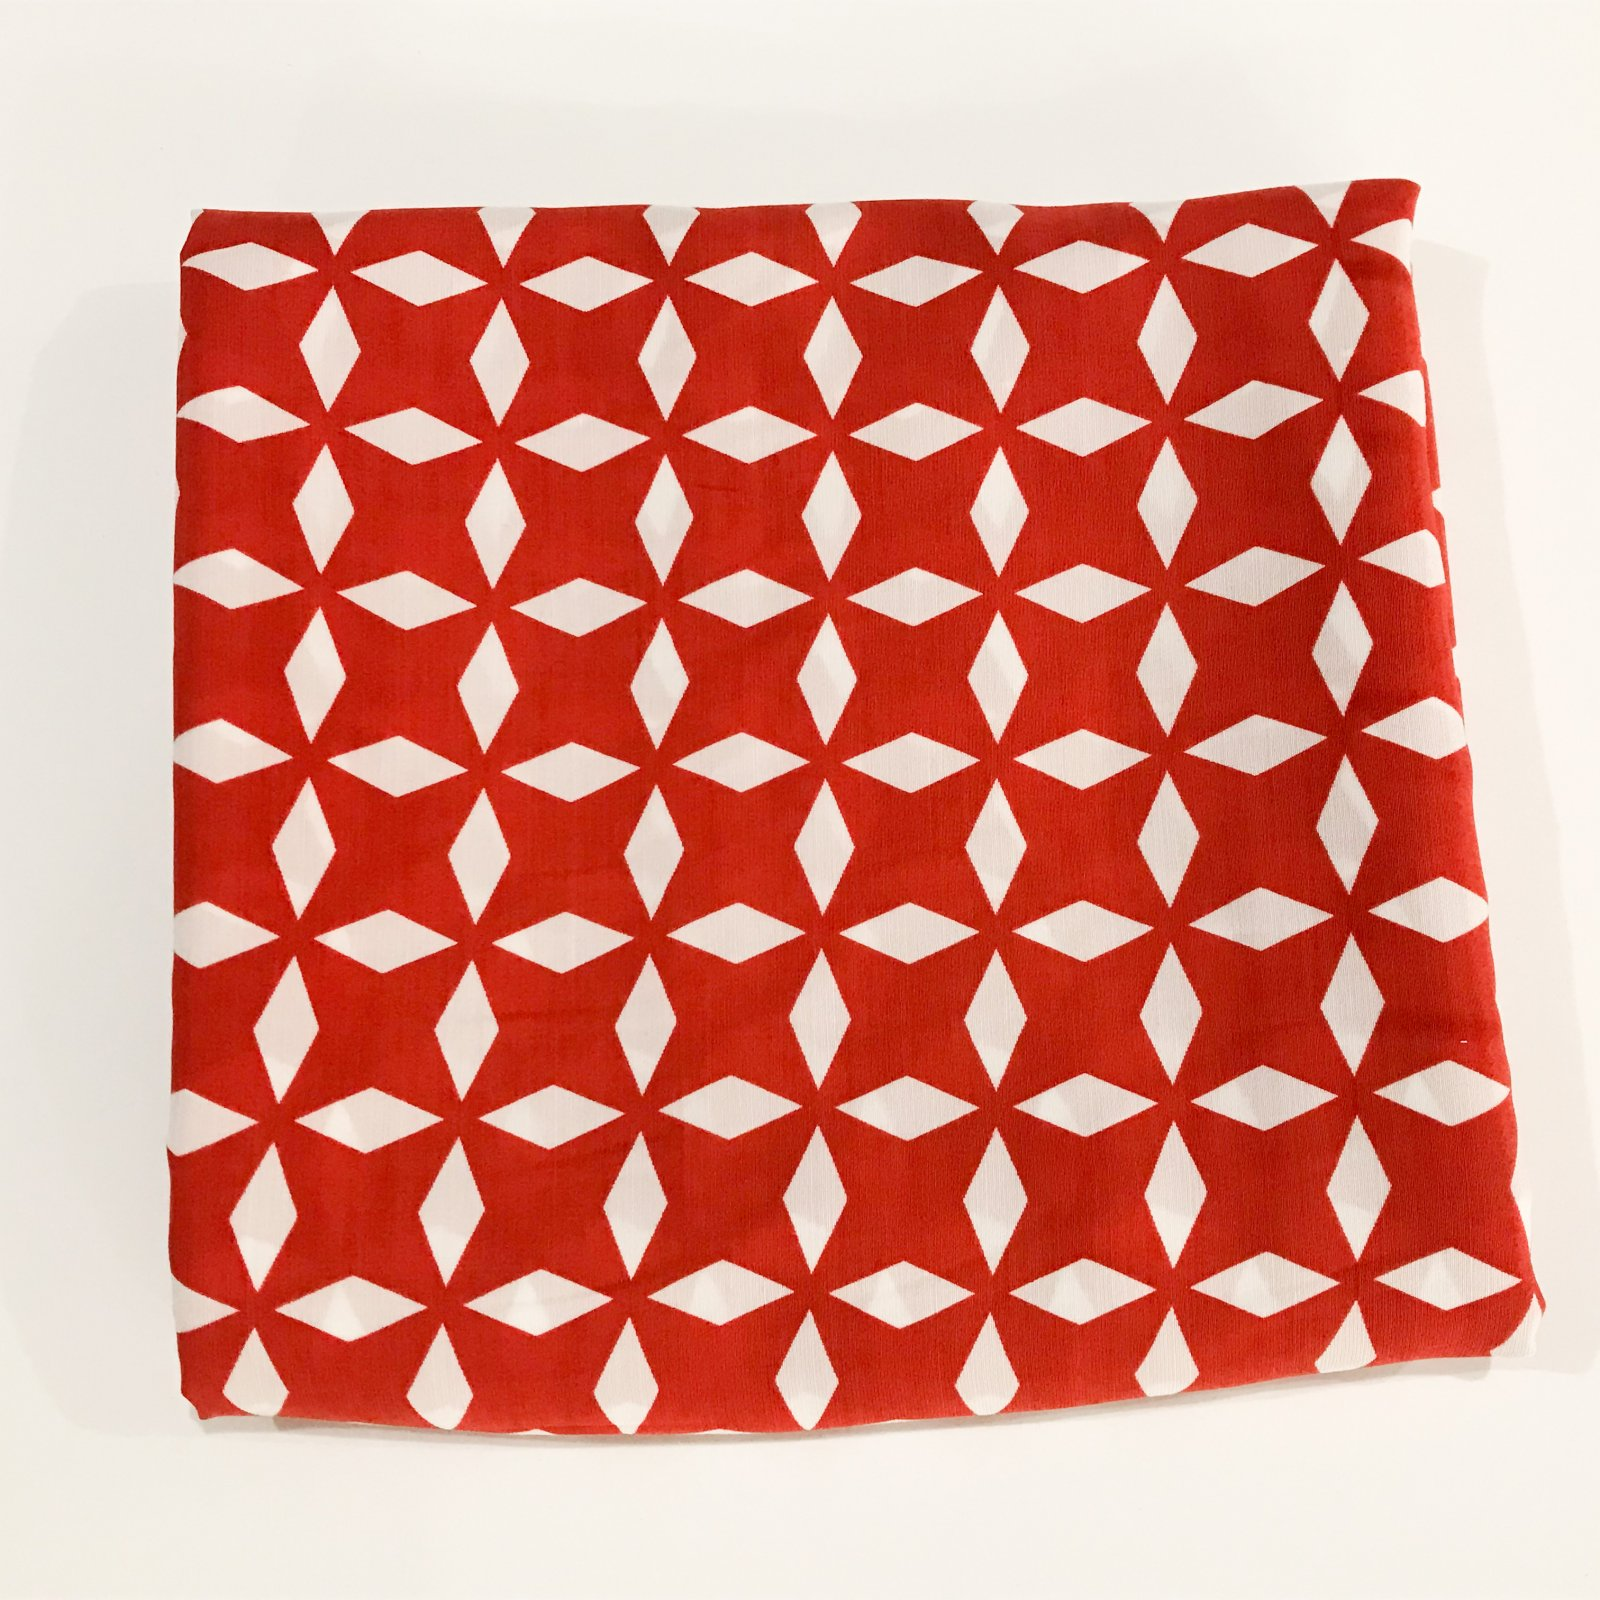 3 1/4 yards - Rayon Red and White Geometric